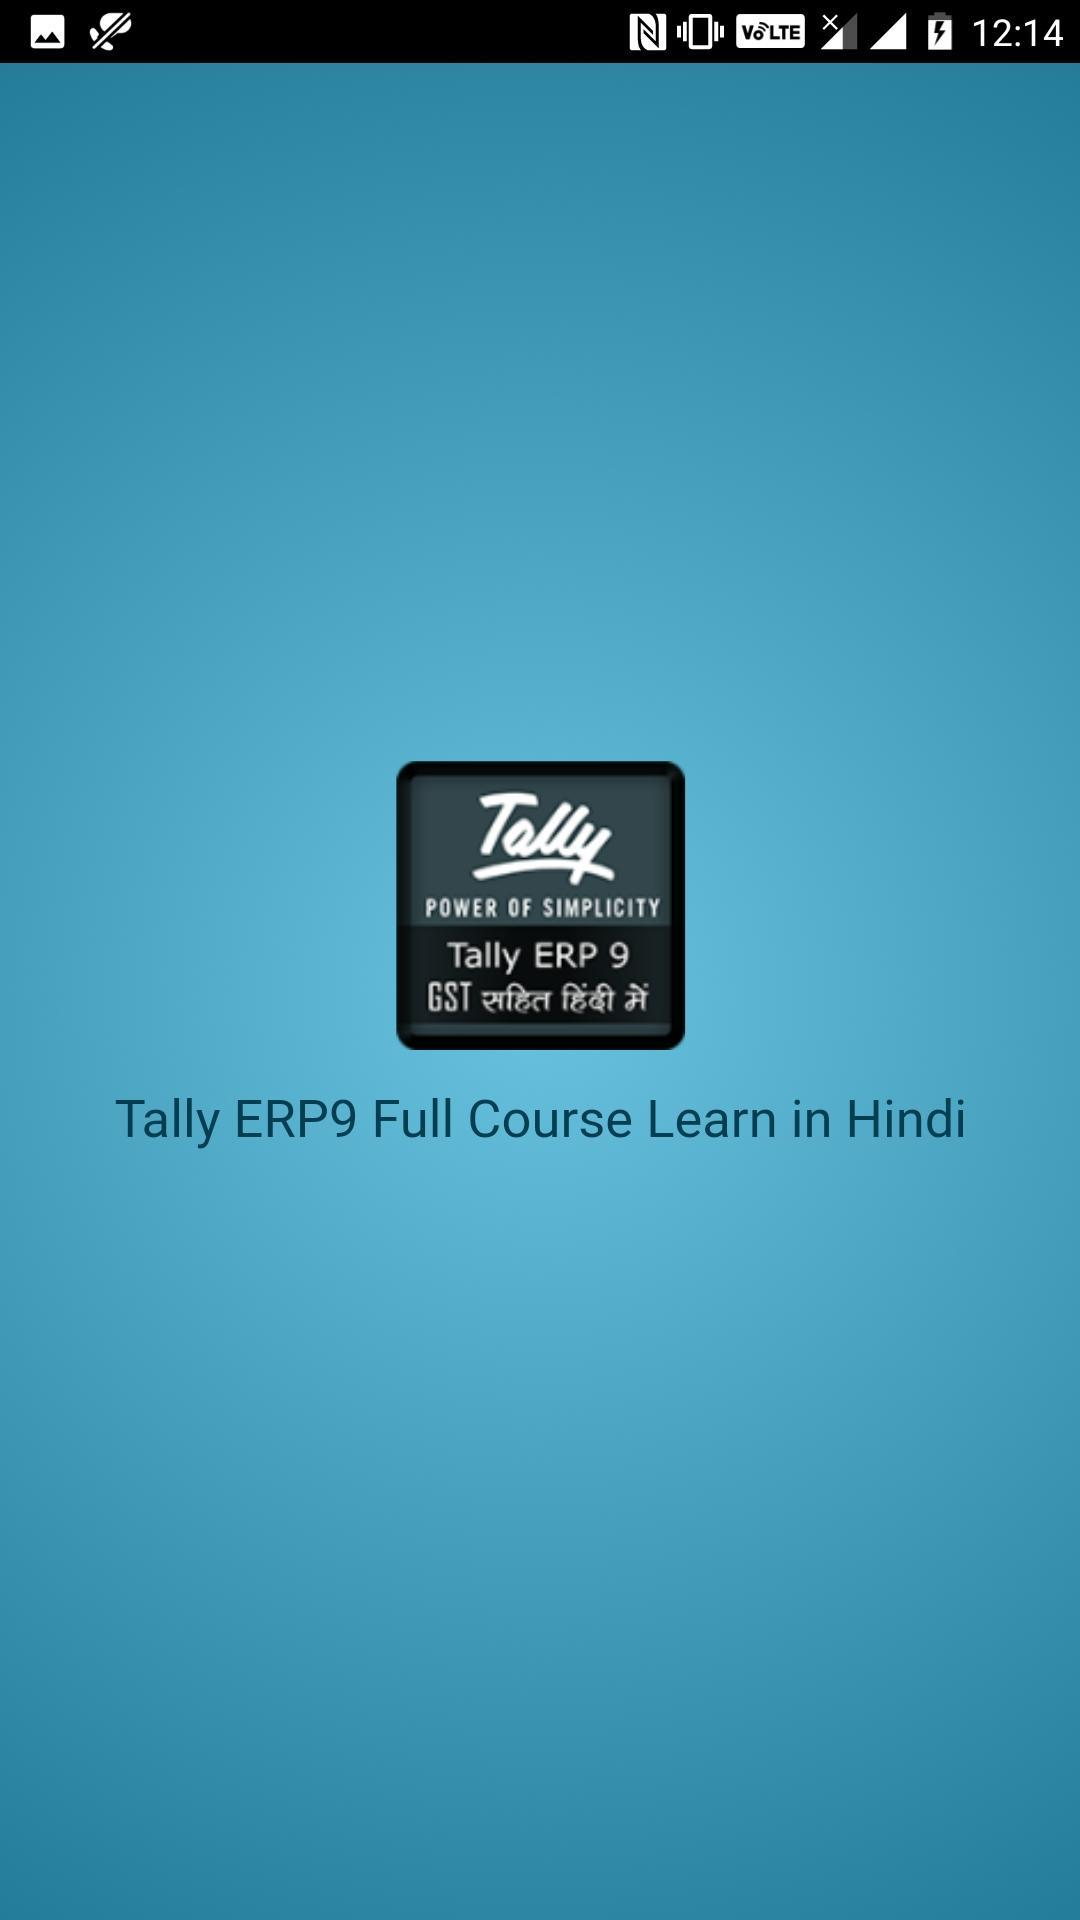 Tally ERP9 Full Course Learn in Hindi for Android - APK Download